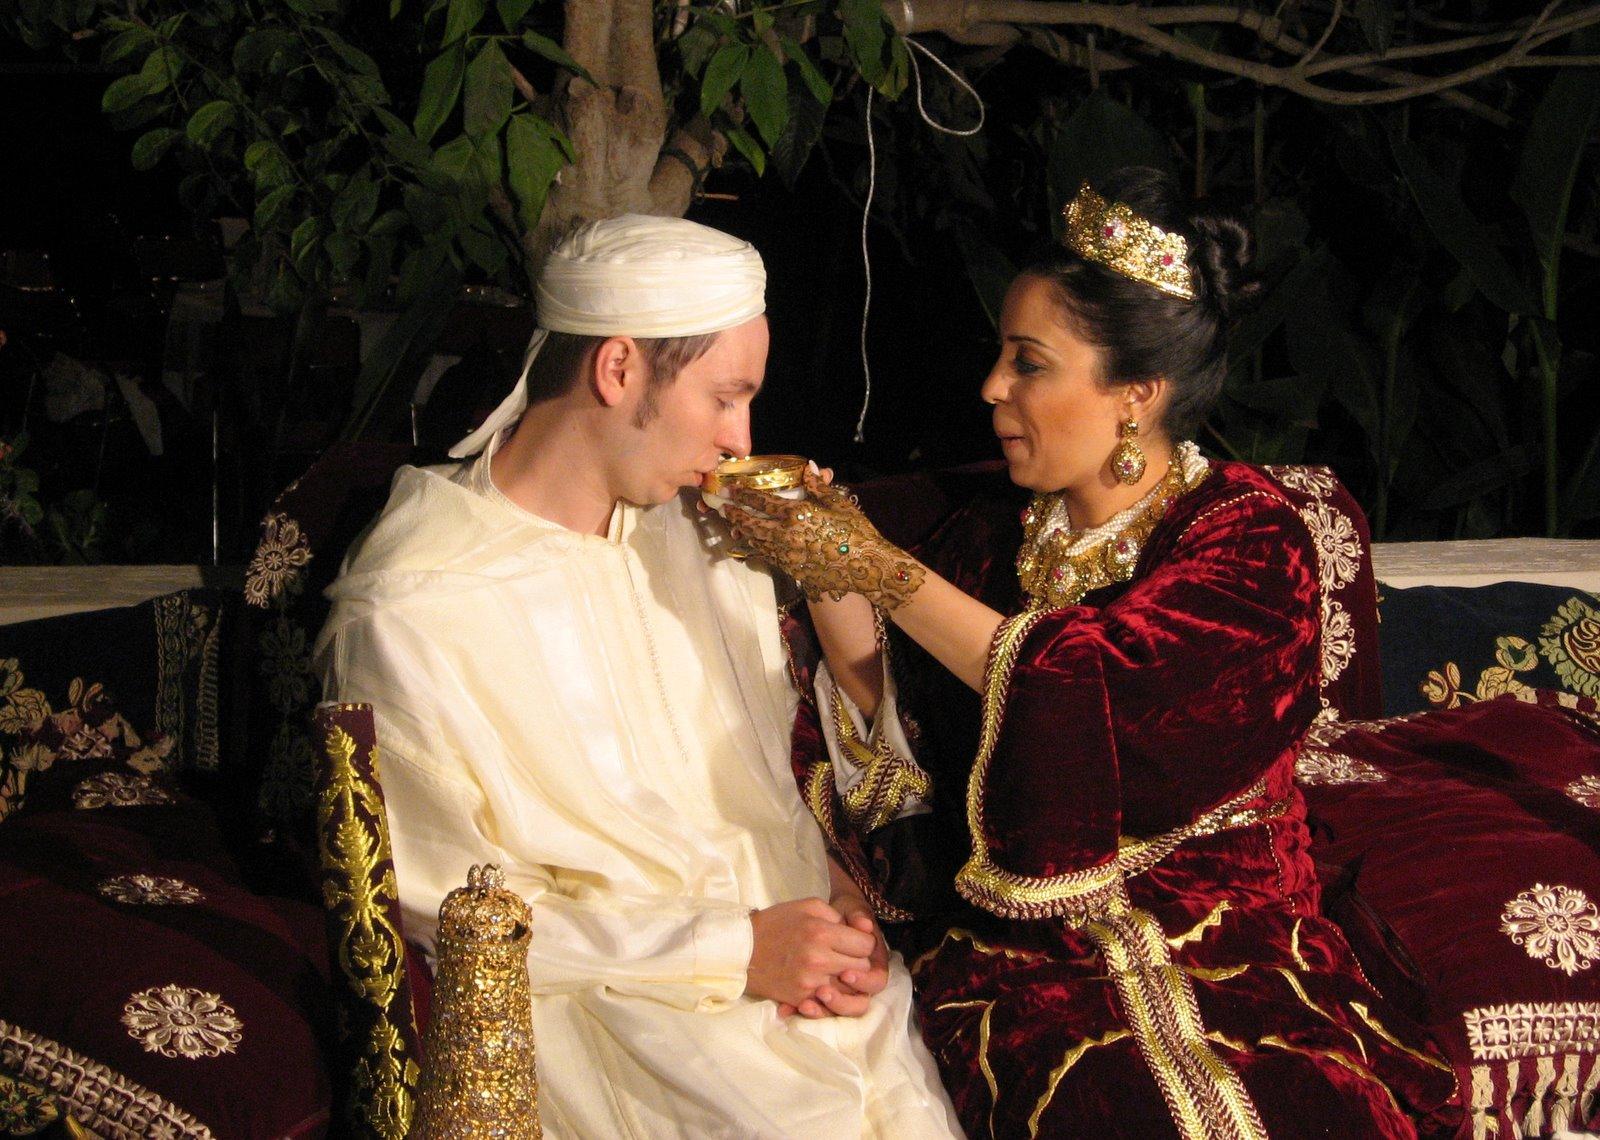 Moroccan dating traditions